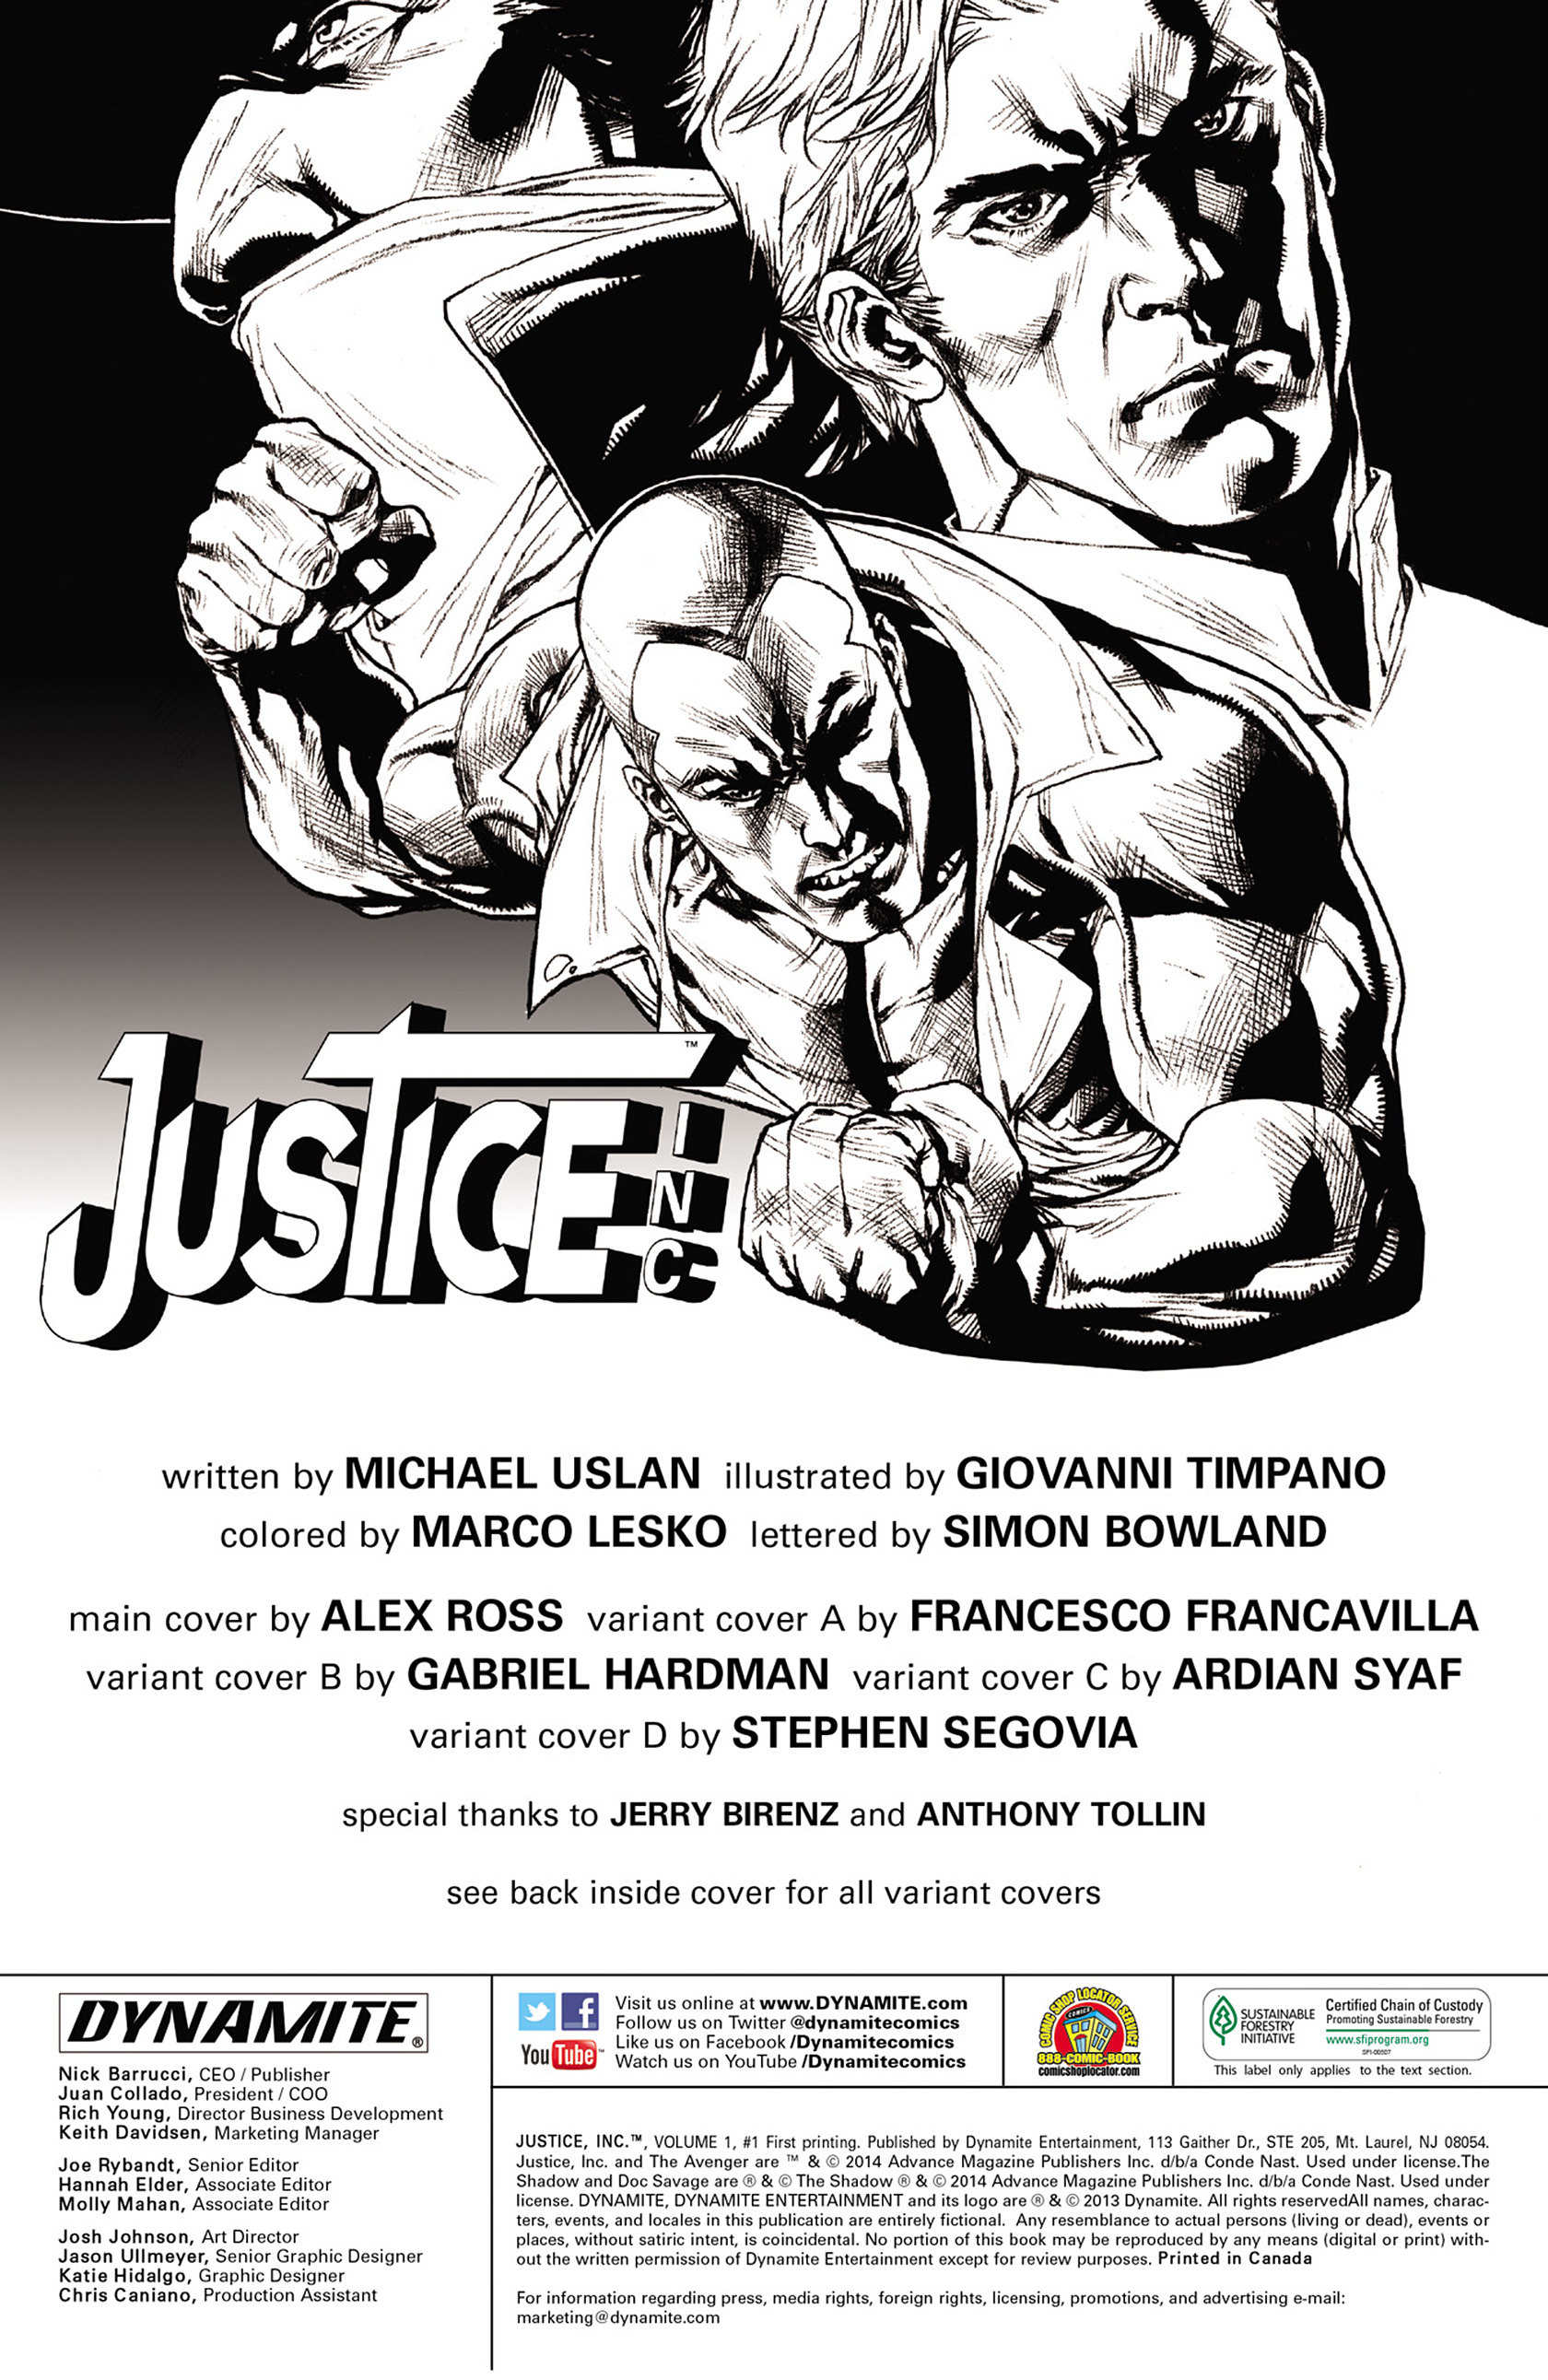 Read online Justice, Inc. comic -  Issue #1 - 6